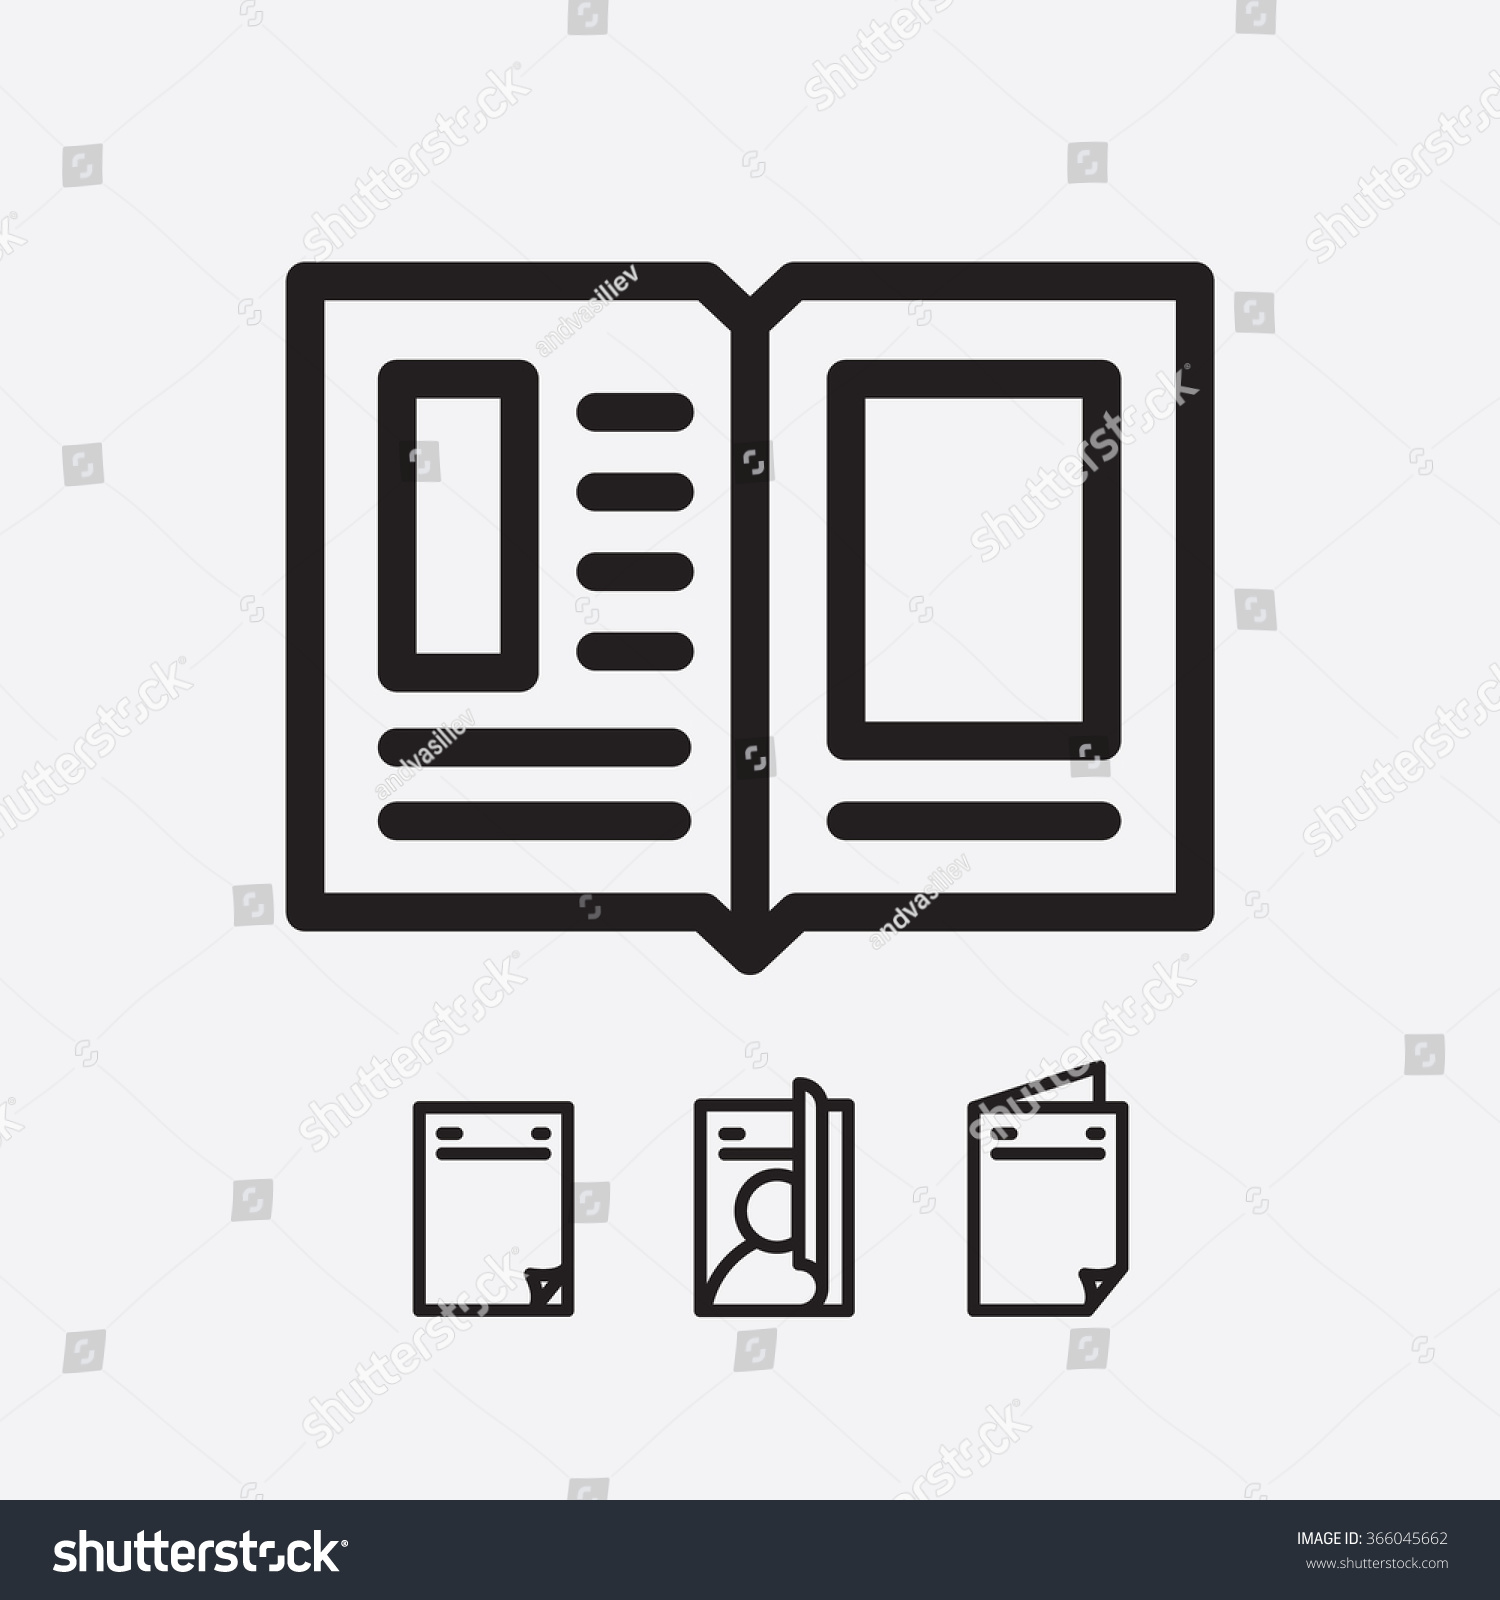 Magazine Open Page Vector. Journal Icon - 366045662 ...